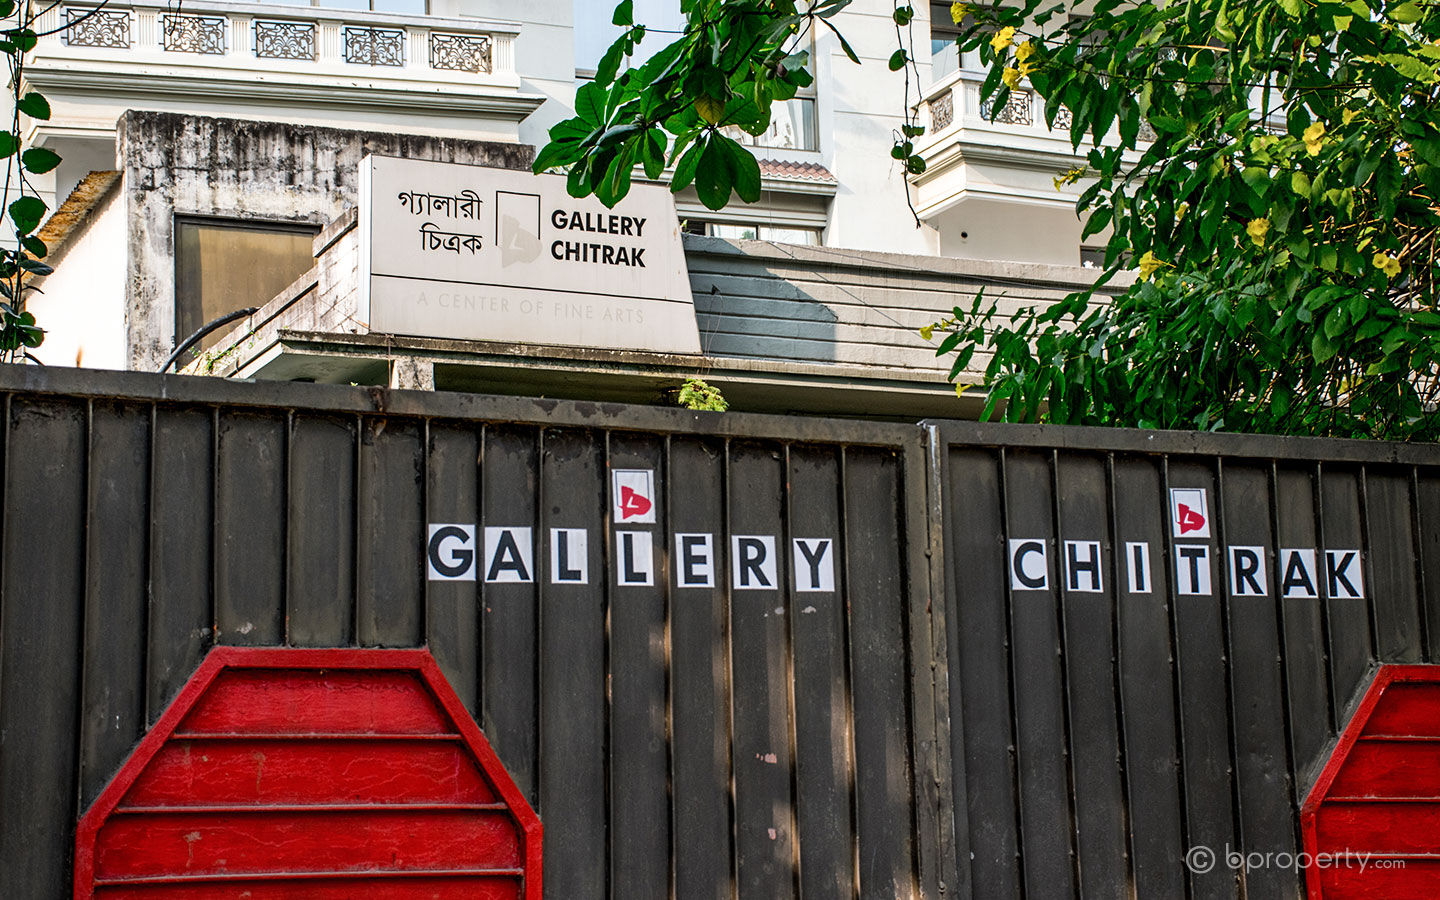 Gallery Chitrak is well-known for hosting social and charitable events